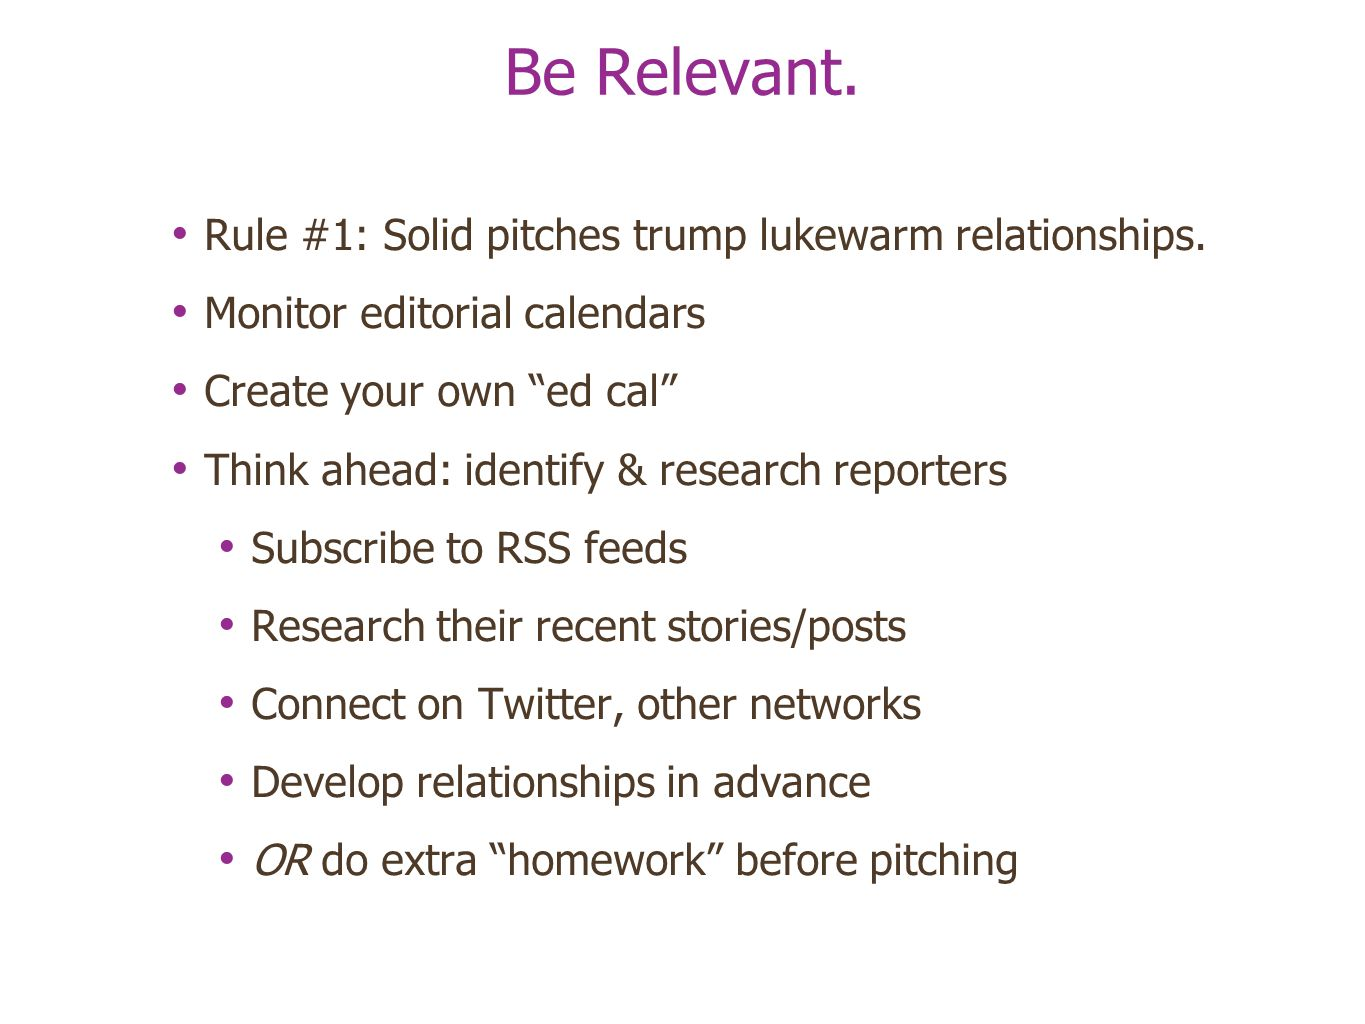 Be Relevant. Rule #1: Solid pitches trump lukewarm relationships.